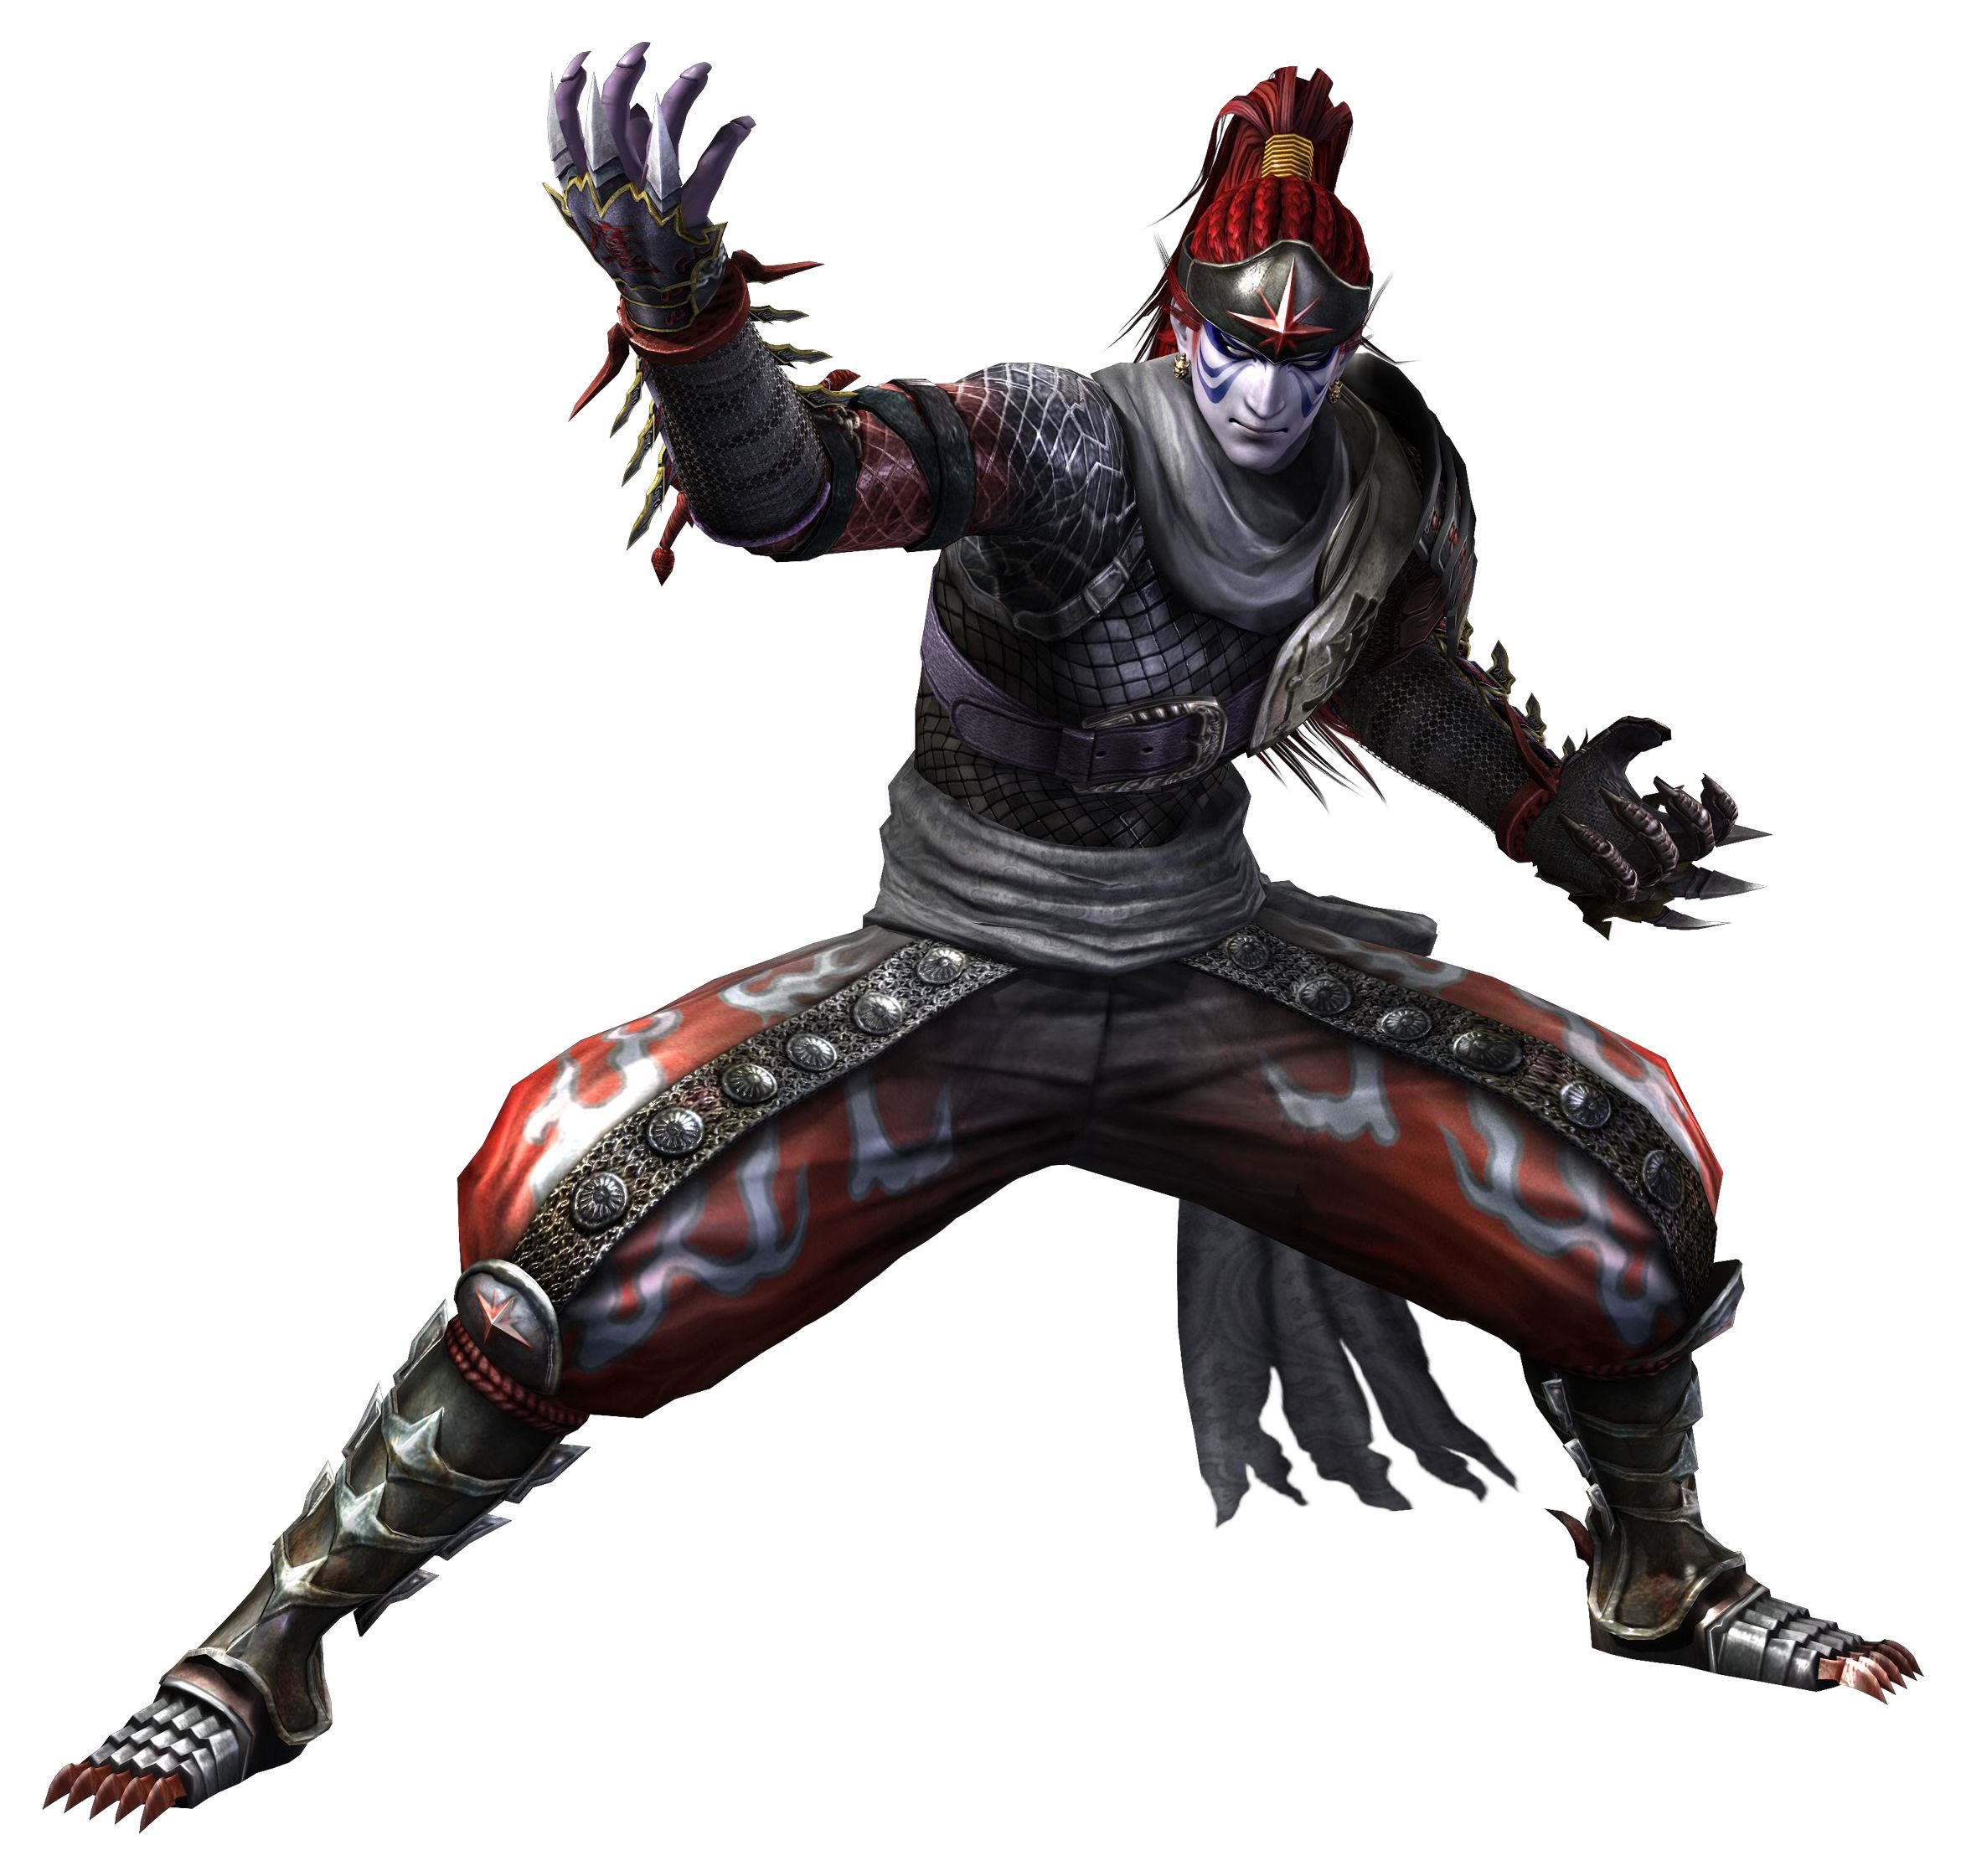 Warriors Orochi 4 How To Change Characters: Orochi Soldier In Warriors Orochi 2